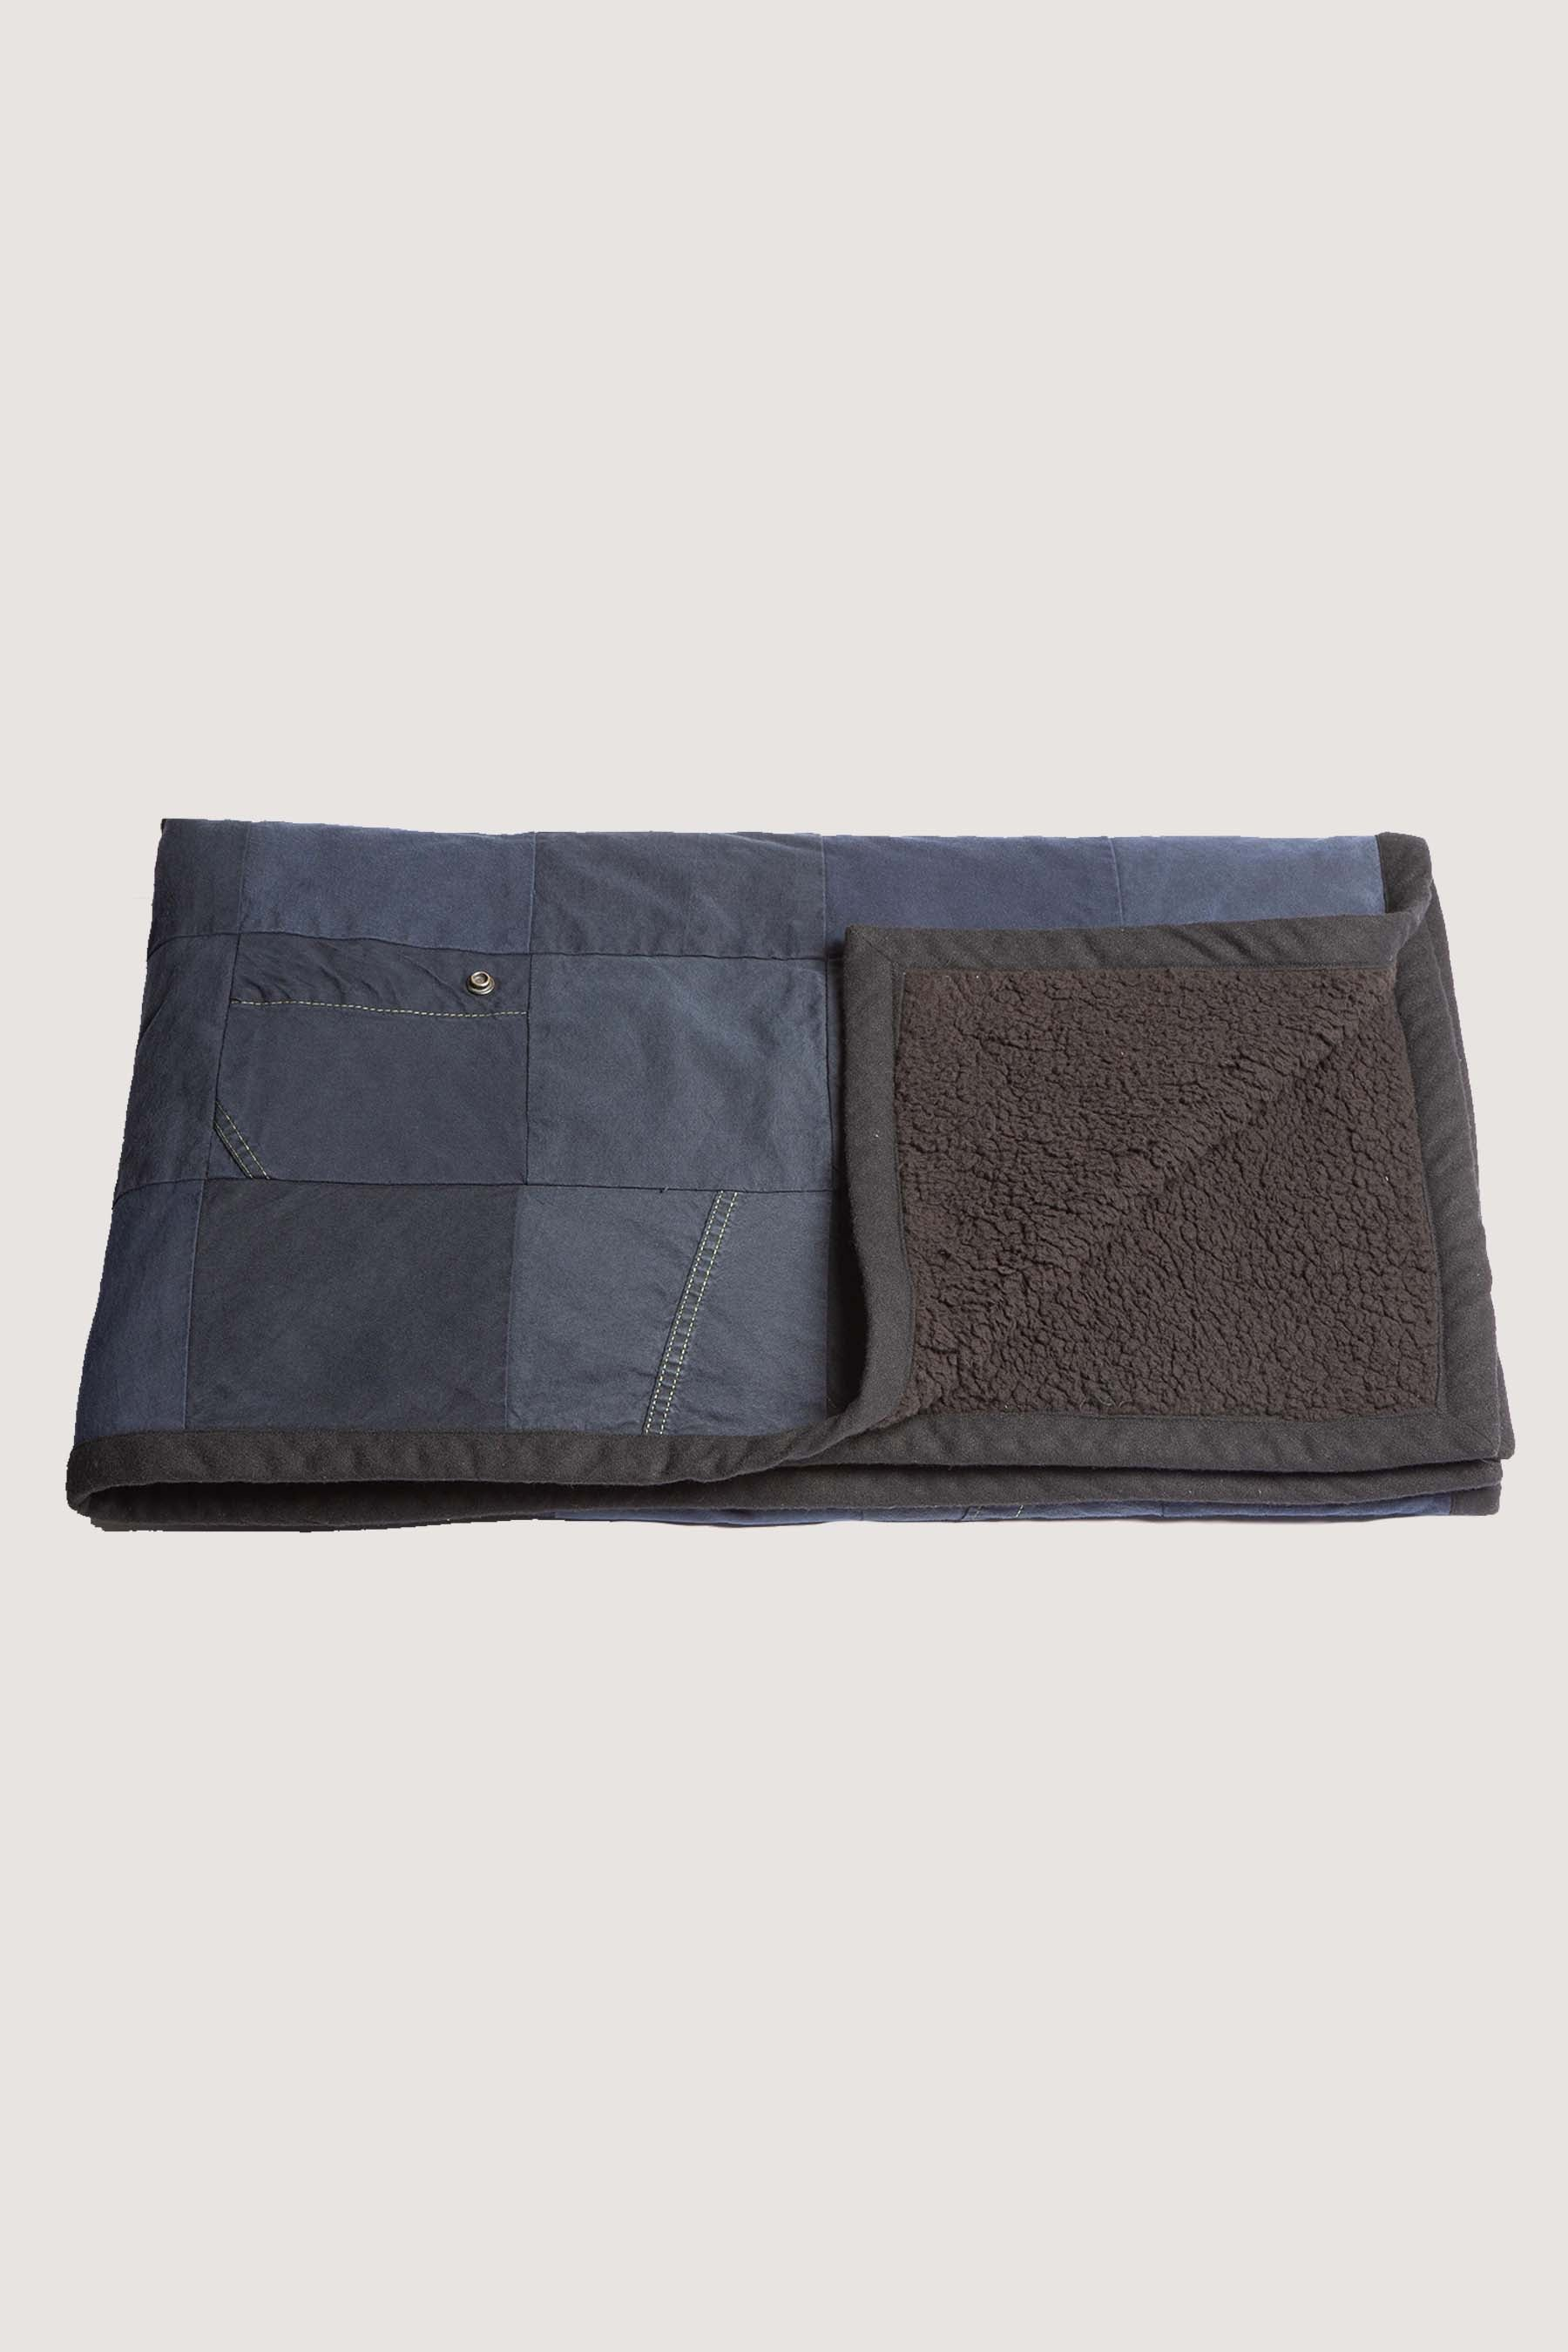 TENT SCRAPWORK/SHERPA THROW - NAVY